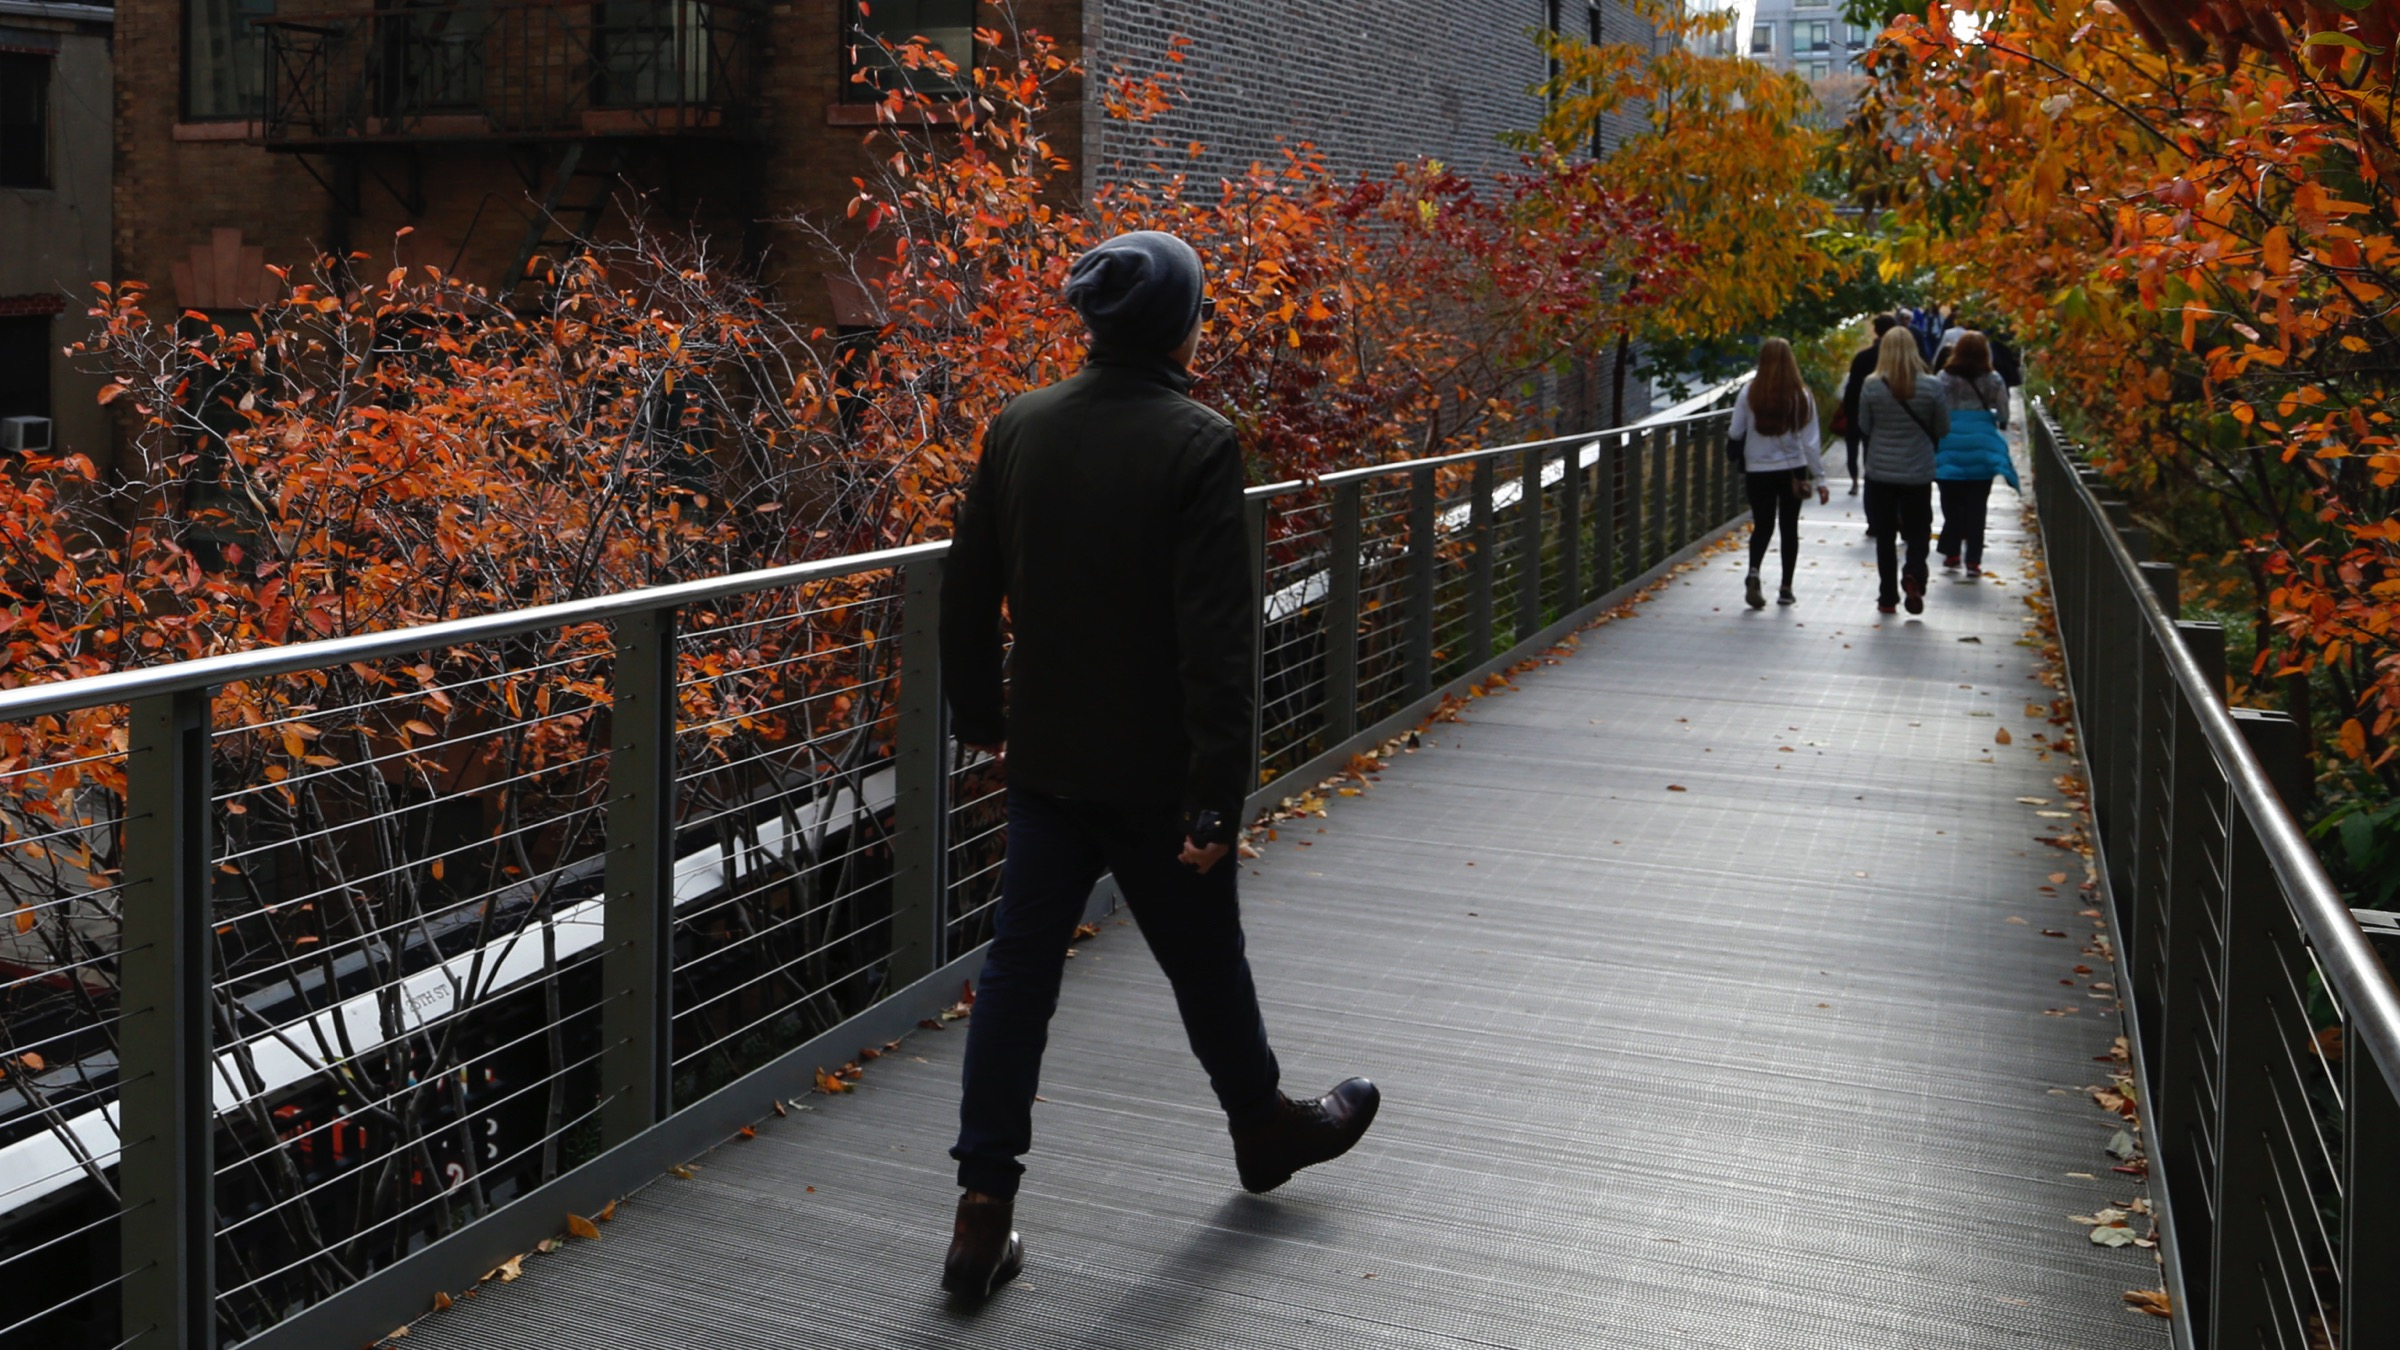 People walk along High Line park on a warm autumn day near foliage displaying fall colors in New York